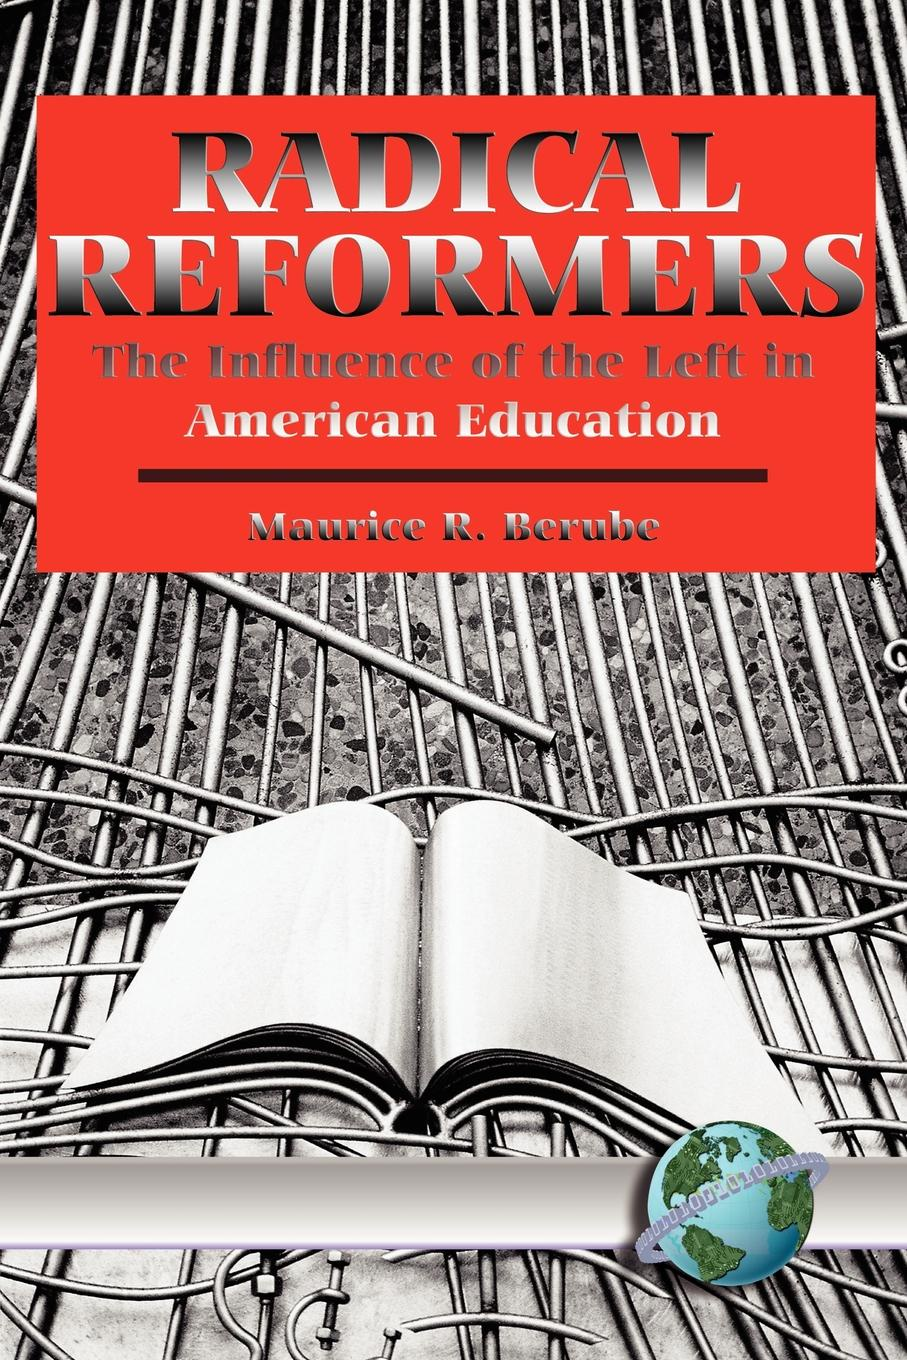 Maurice R. Berube Radical Reformers. The Influence of the Left in American Education (PB) advancing democracy through education u s influence abroad and domestic practices pb